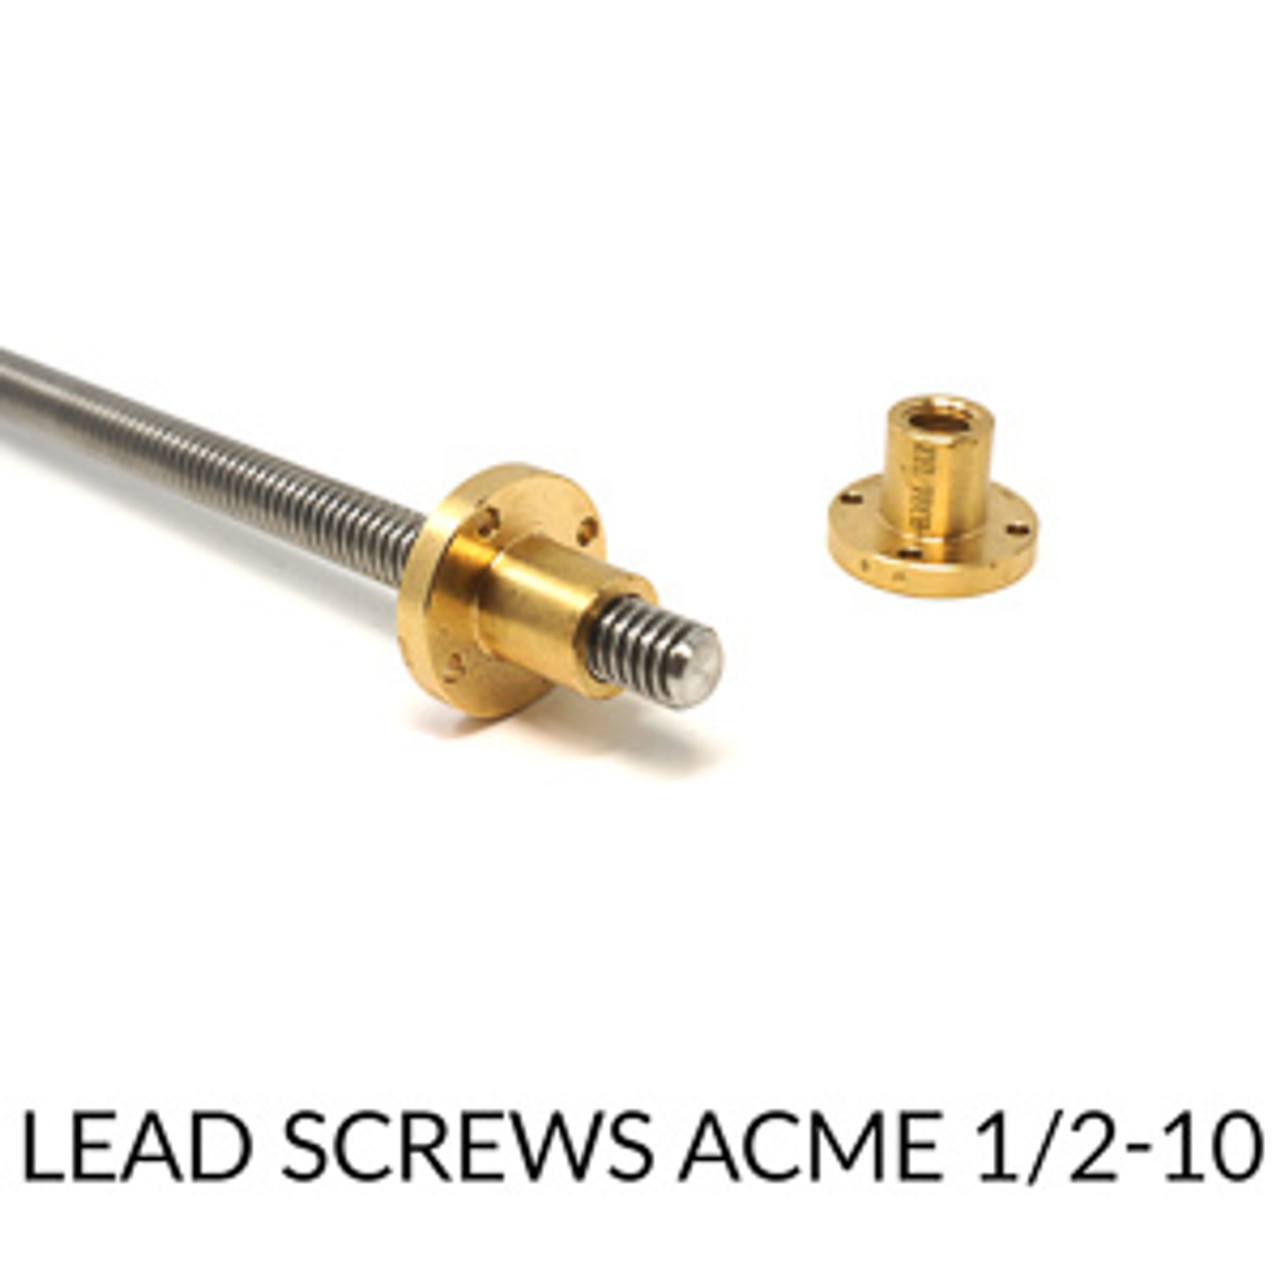 Lead Screws  ACME 1/2-10